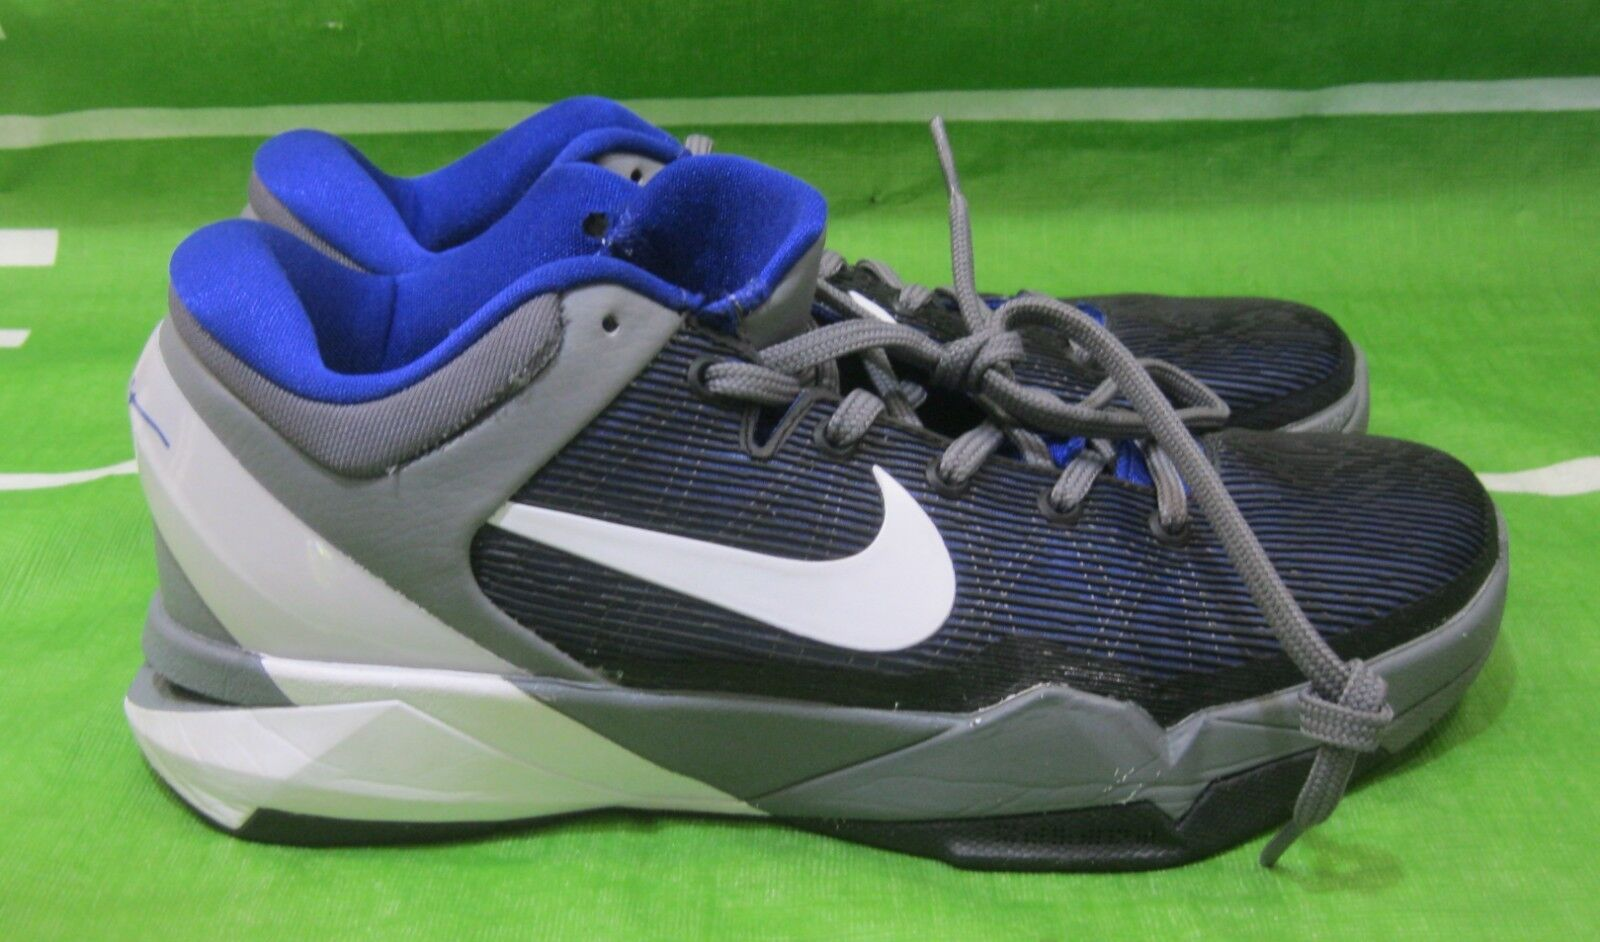 c5aa58ad2af0 Nike Zoom Kobe Vii System Men s Basketball shoes shoes shoes 488371-402  Size 8.5 c9fb3a